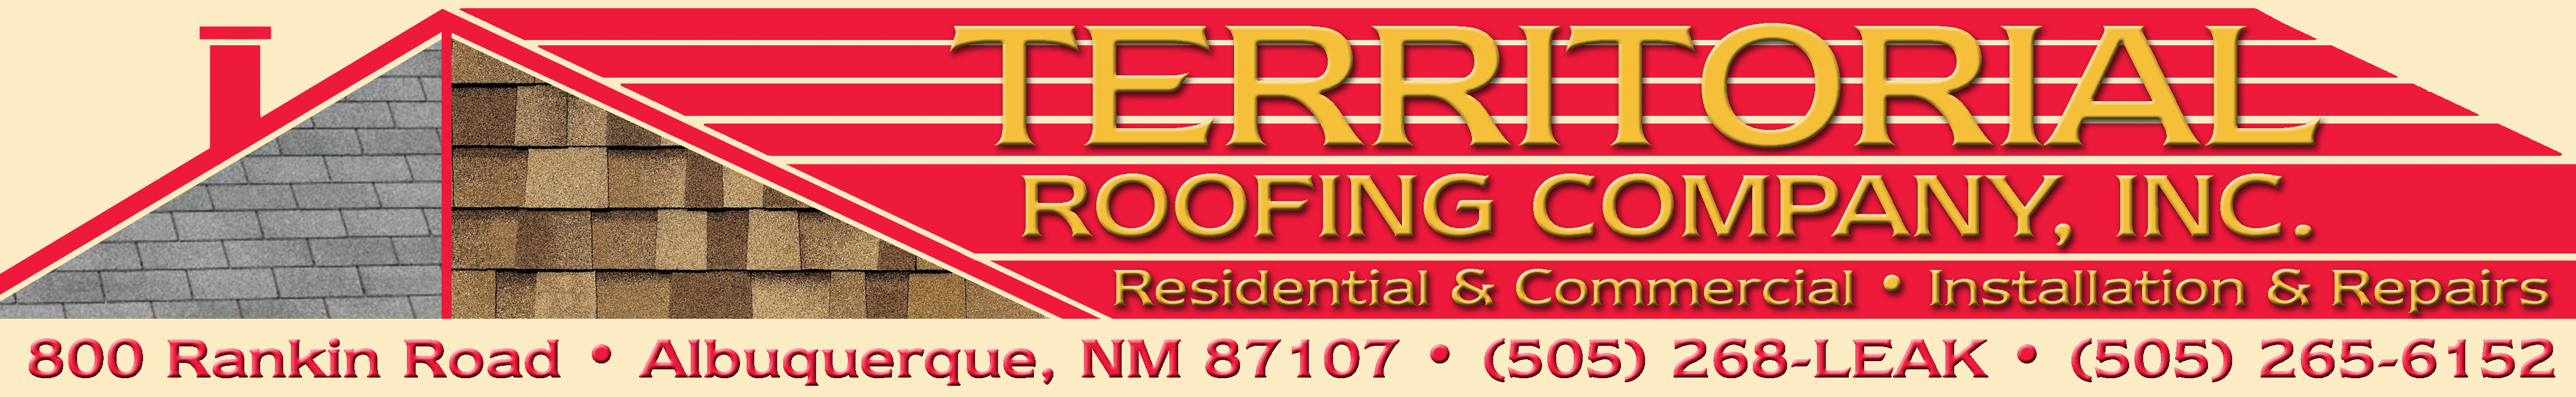 Territorial Roofing Company, Inc.